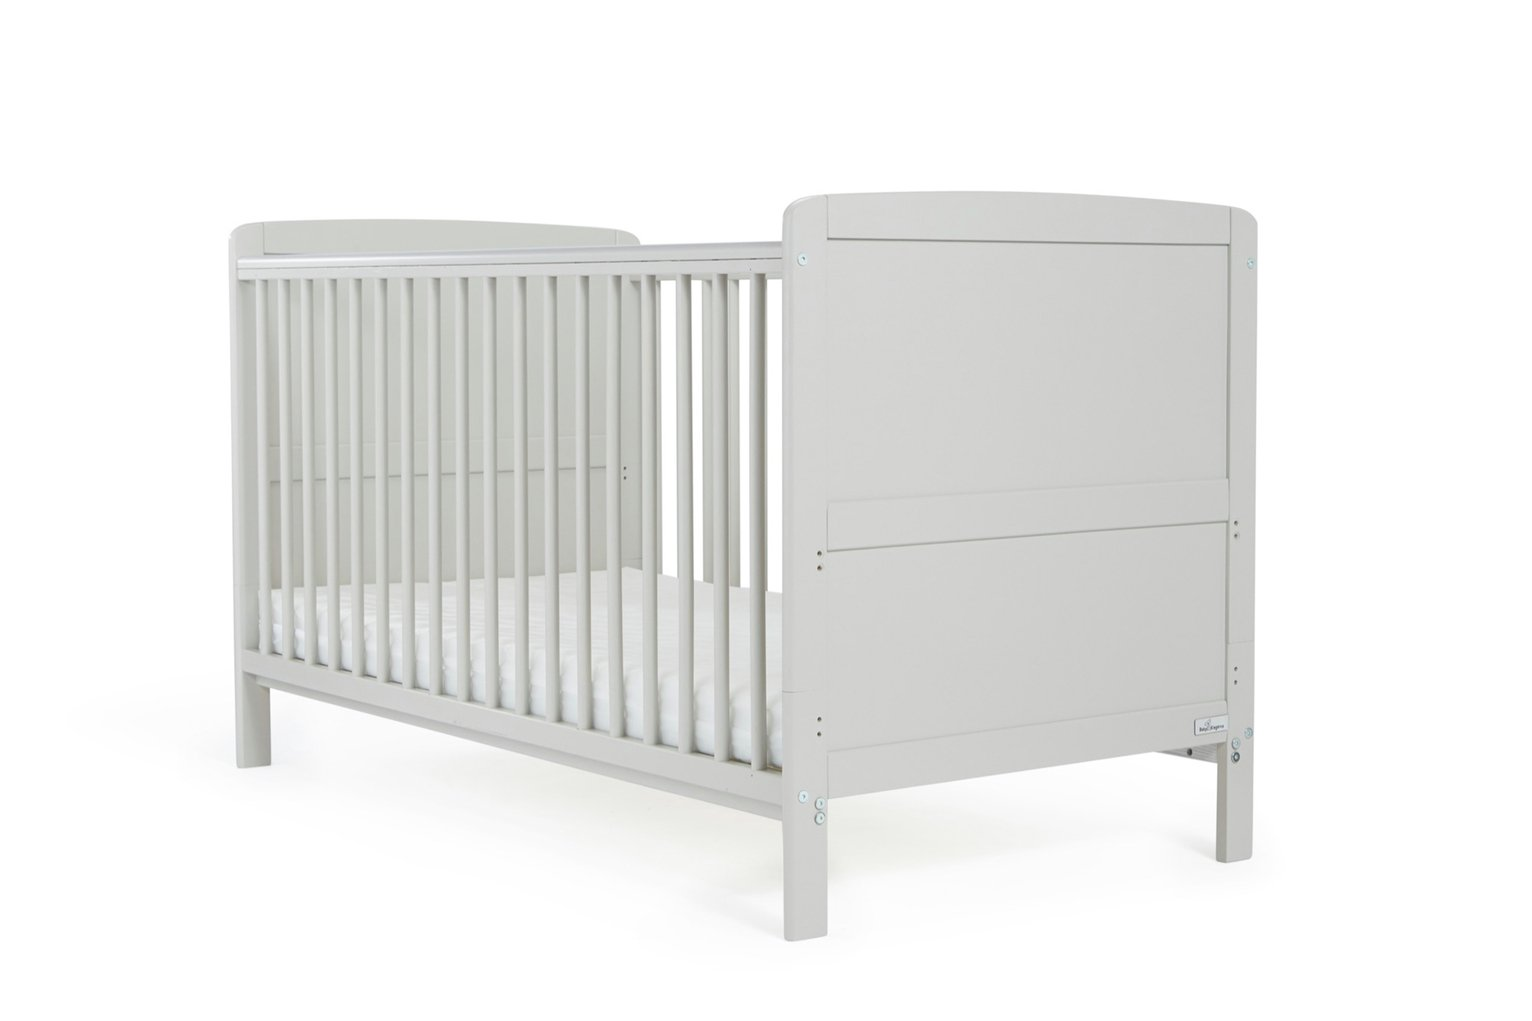 Baby Elegance Travis Baby Cot Bed with Mattress - Grey